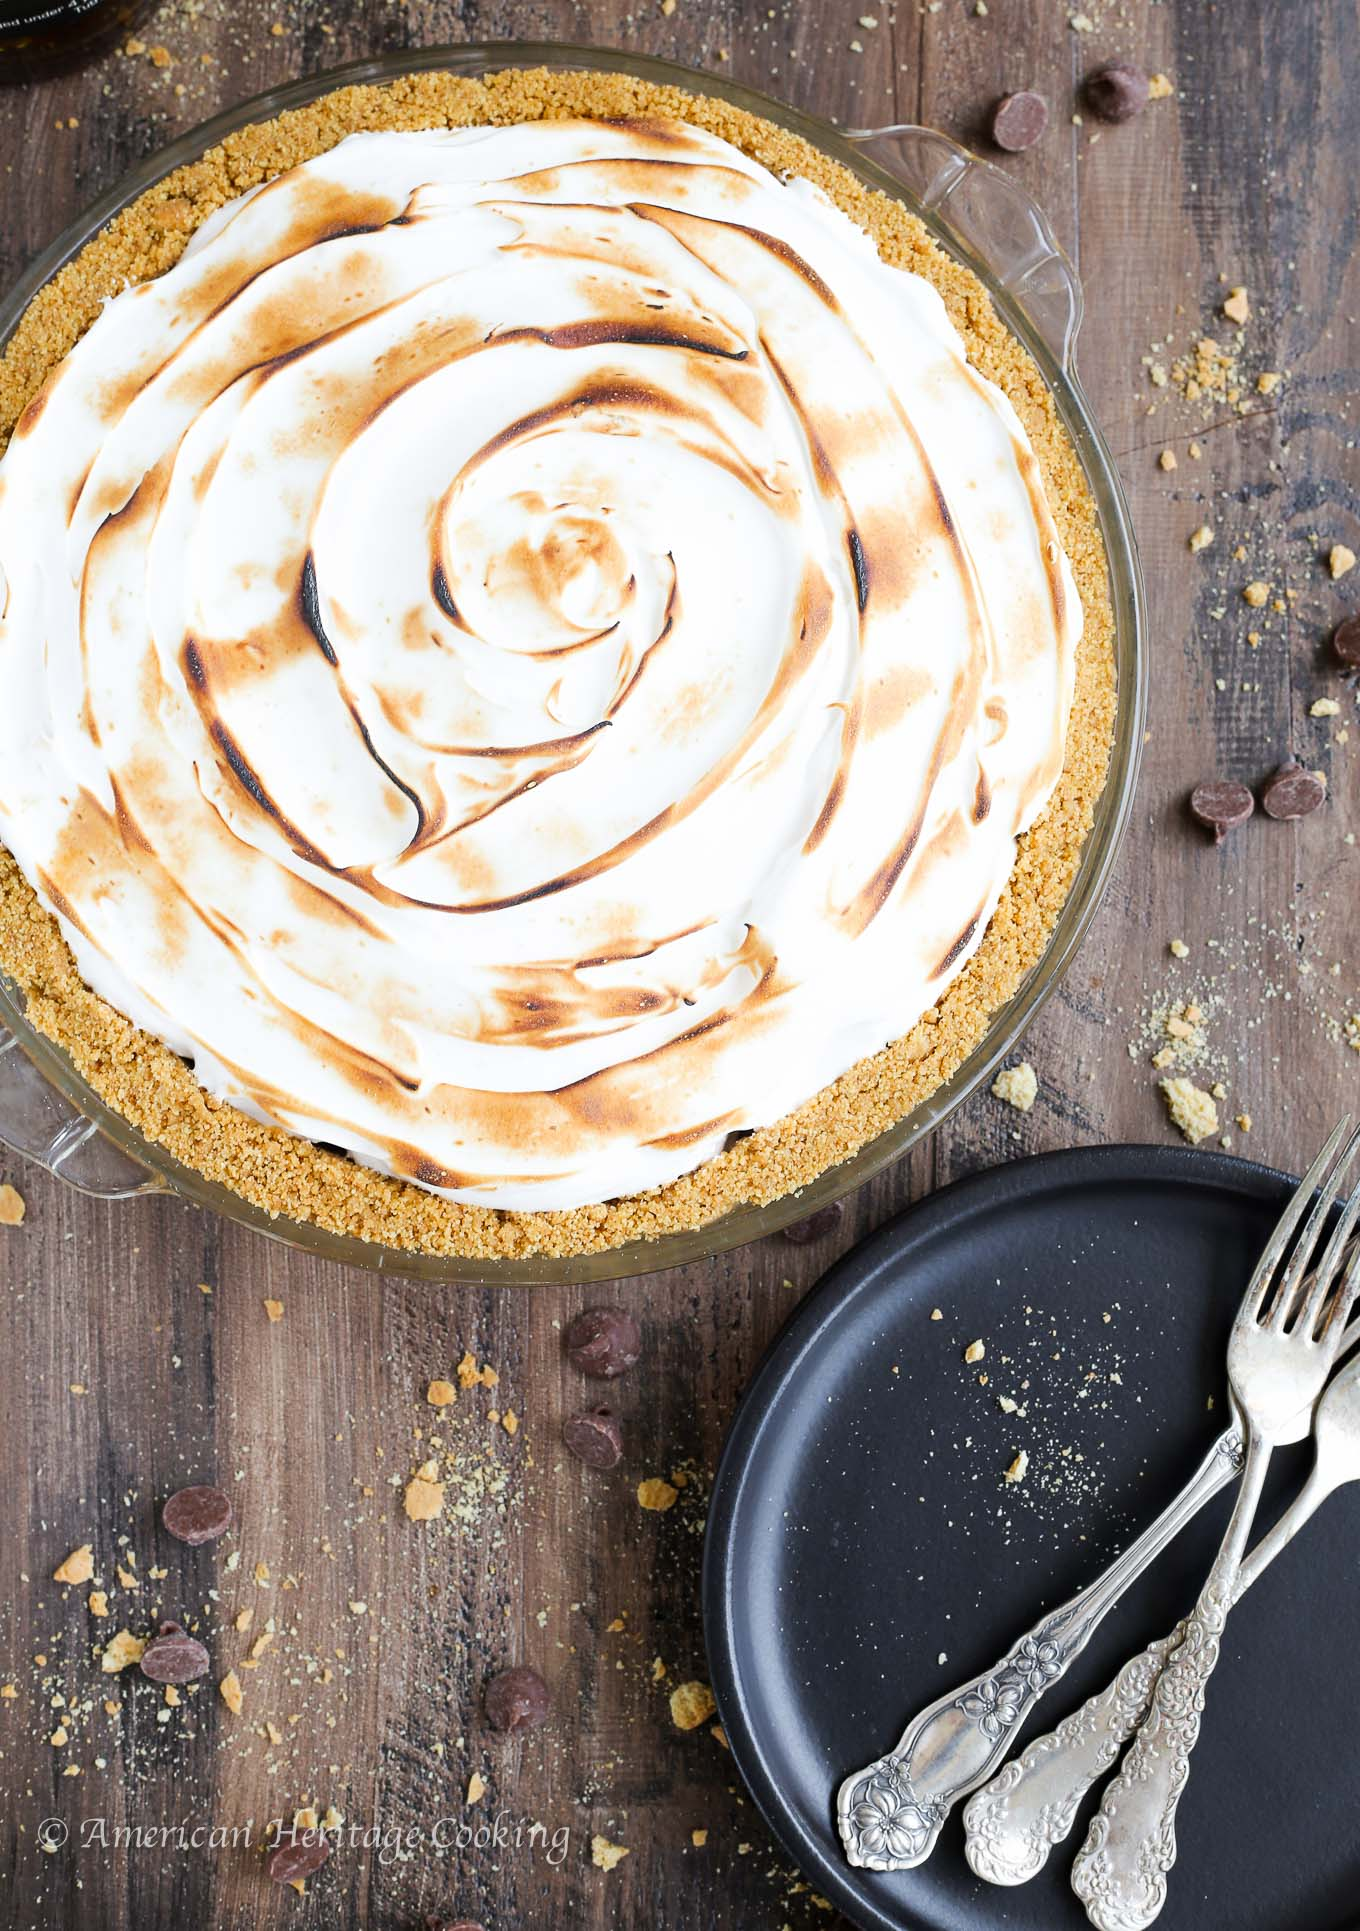 This No Bake Whiskey Smores Pie is a slice of Summer Heaven! There are layers of dark chocolate whisky ganache, milk chocolate mousse and fluffy toasted marshmallow in the perfect graham cracker crust. Go ahead…help yourself to another slice.